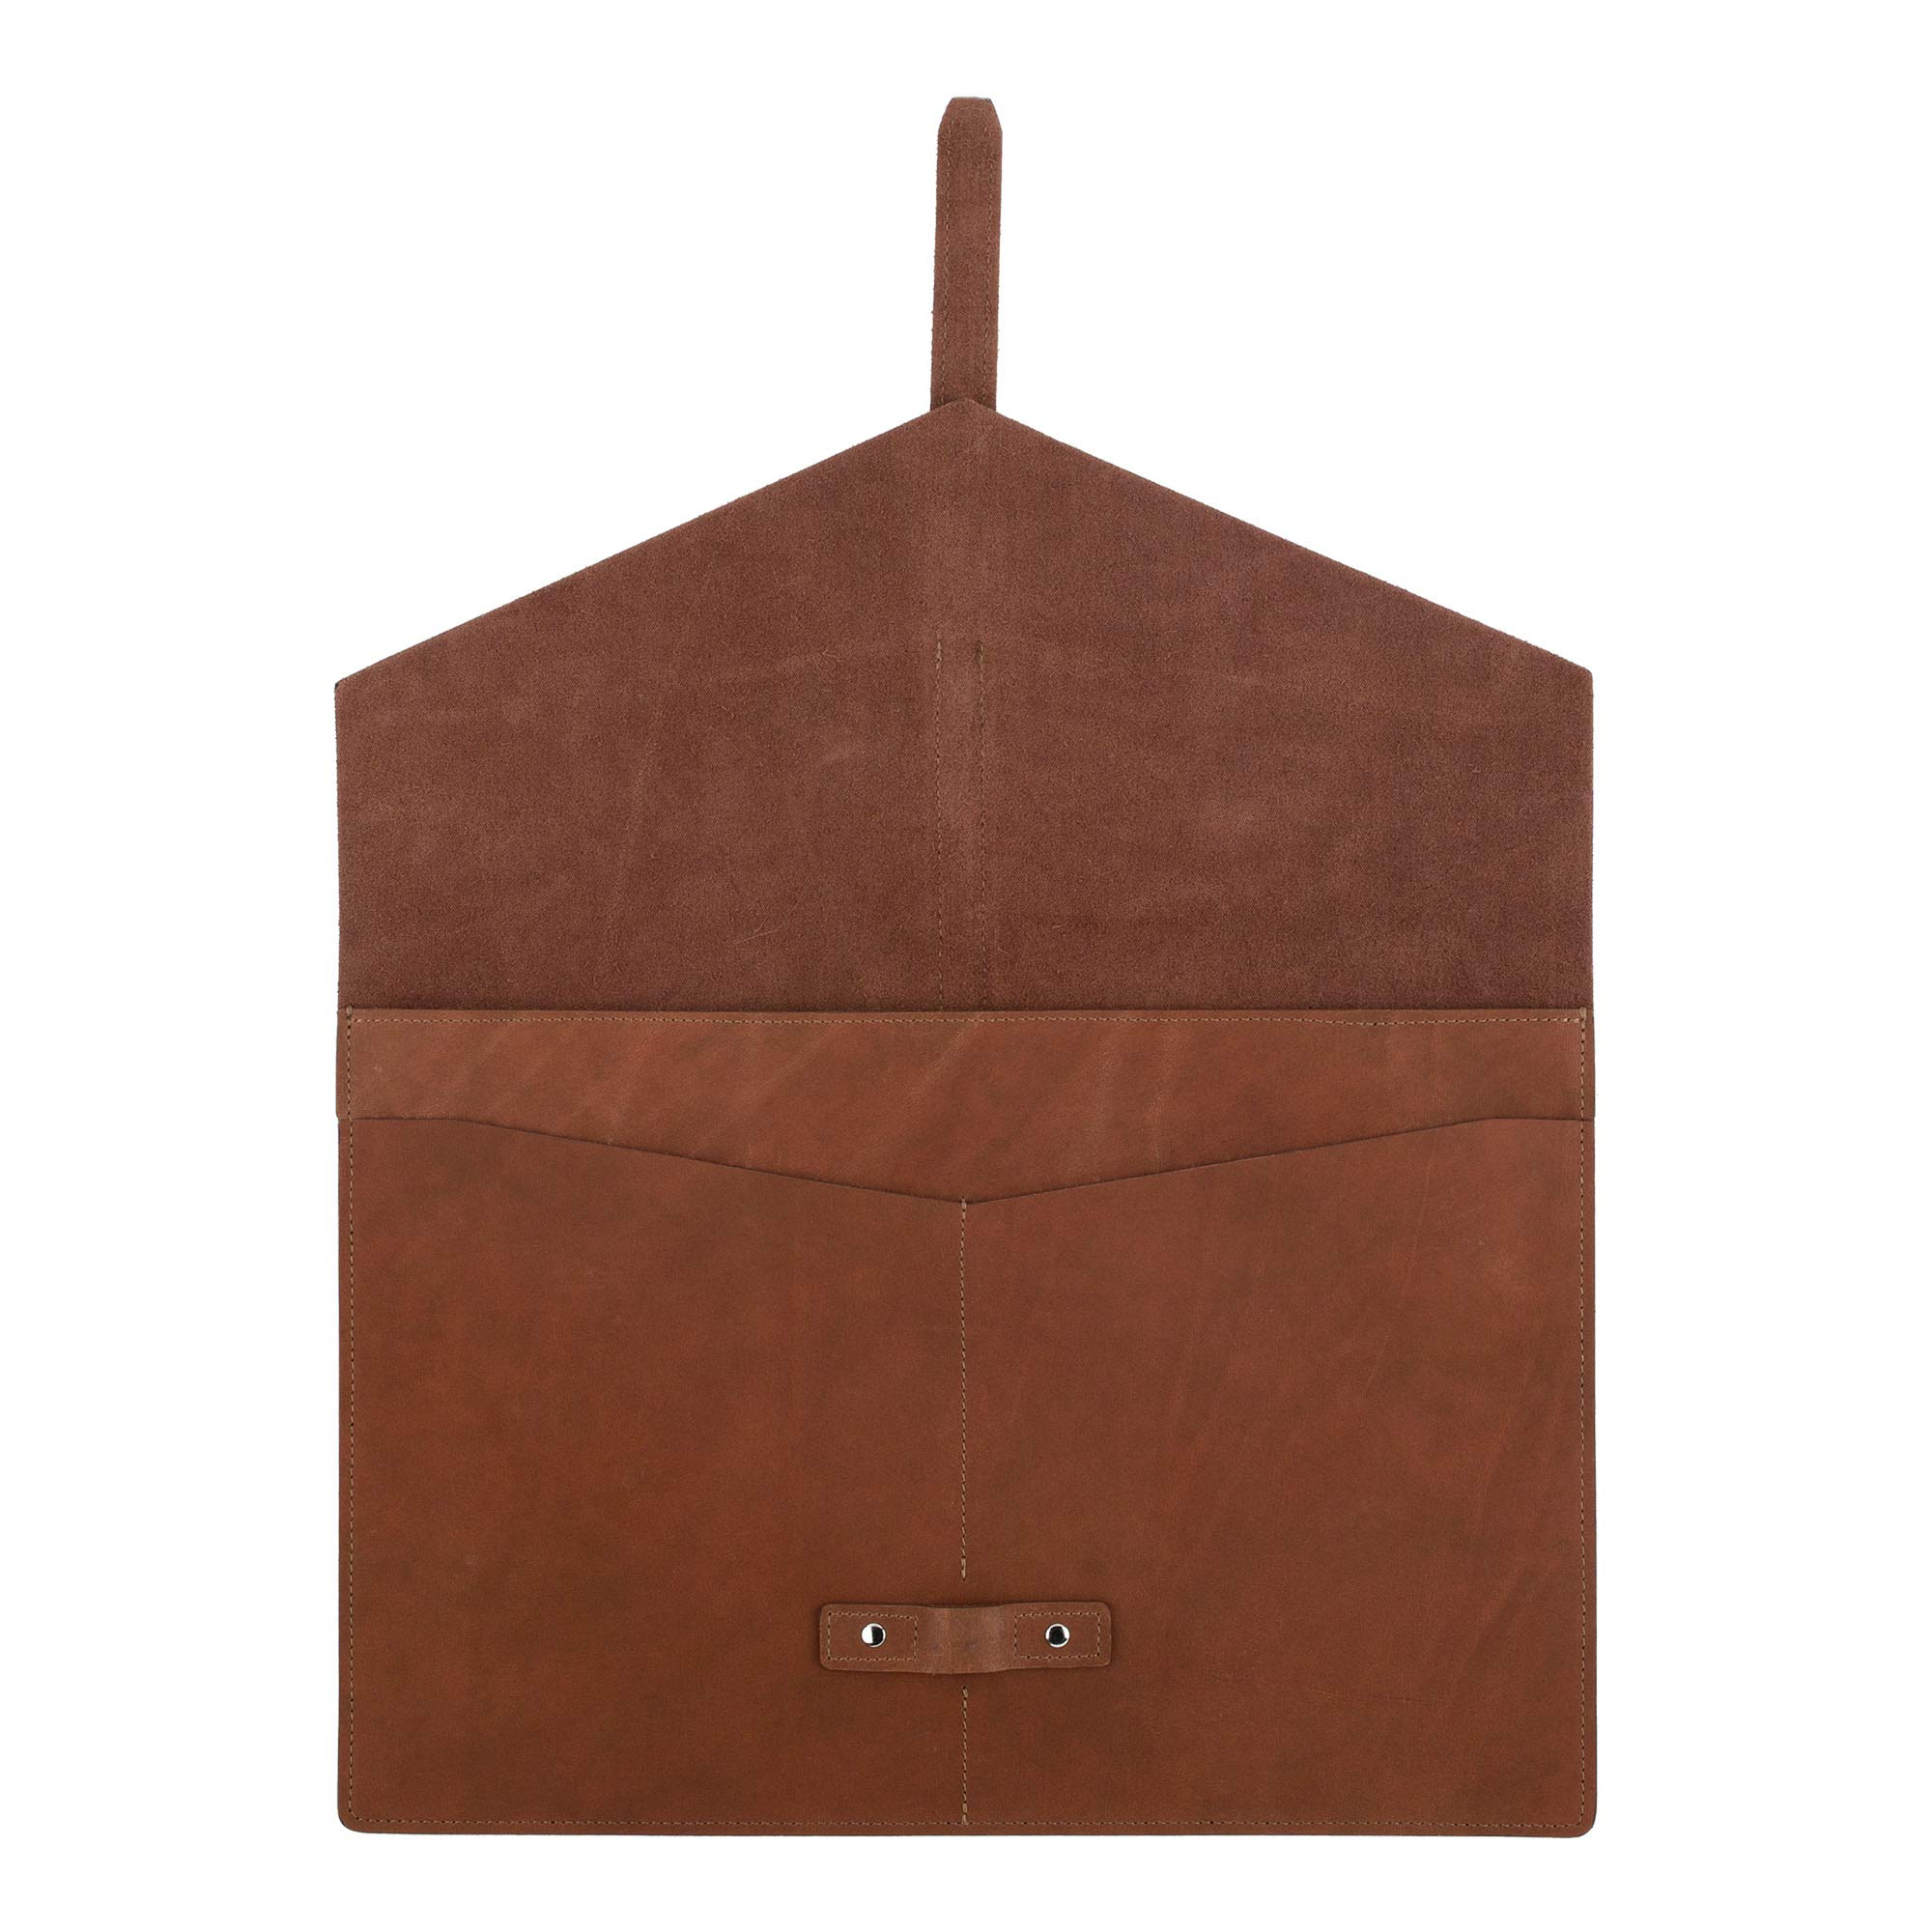 SLATE COLLECTION Belltown Small Laptop Sleeve, Full-Grain Leather (Cognac, fits 13'' Laptop) by SLATE COLLECTION (Image #5)